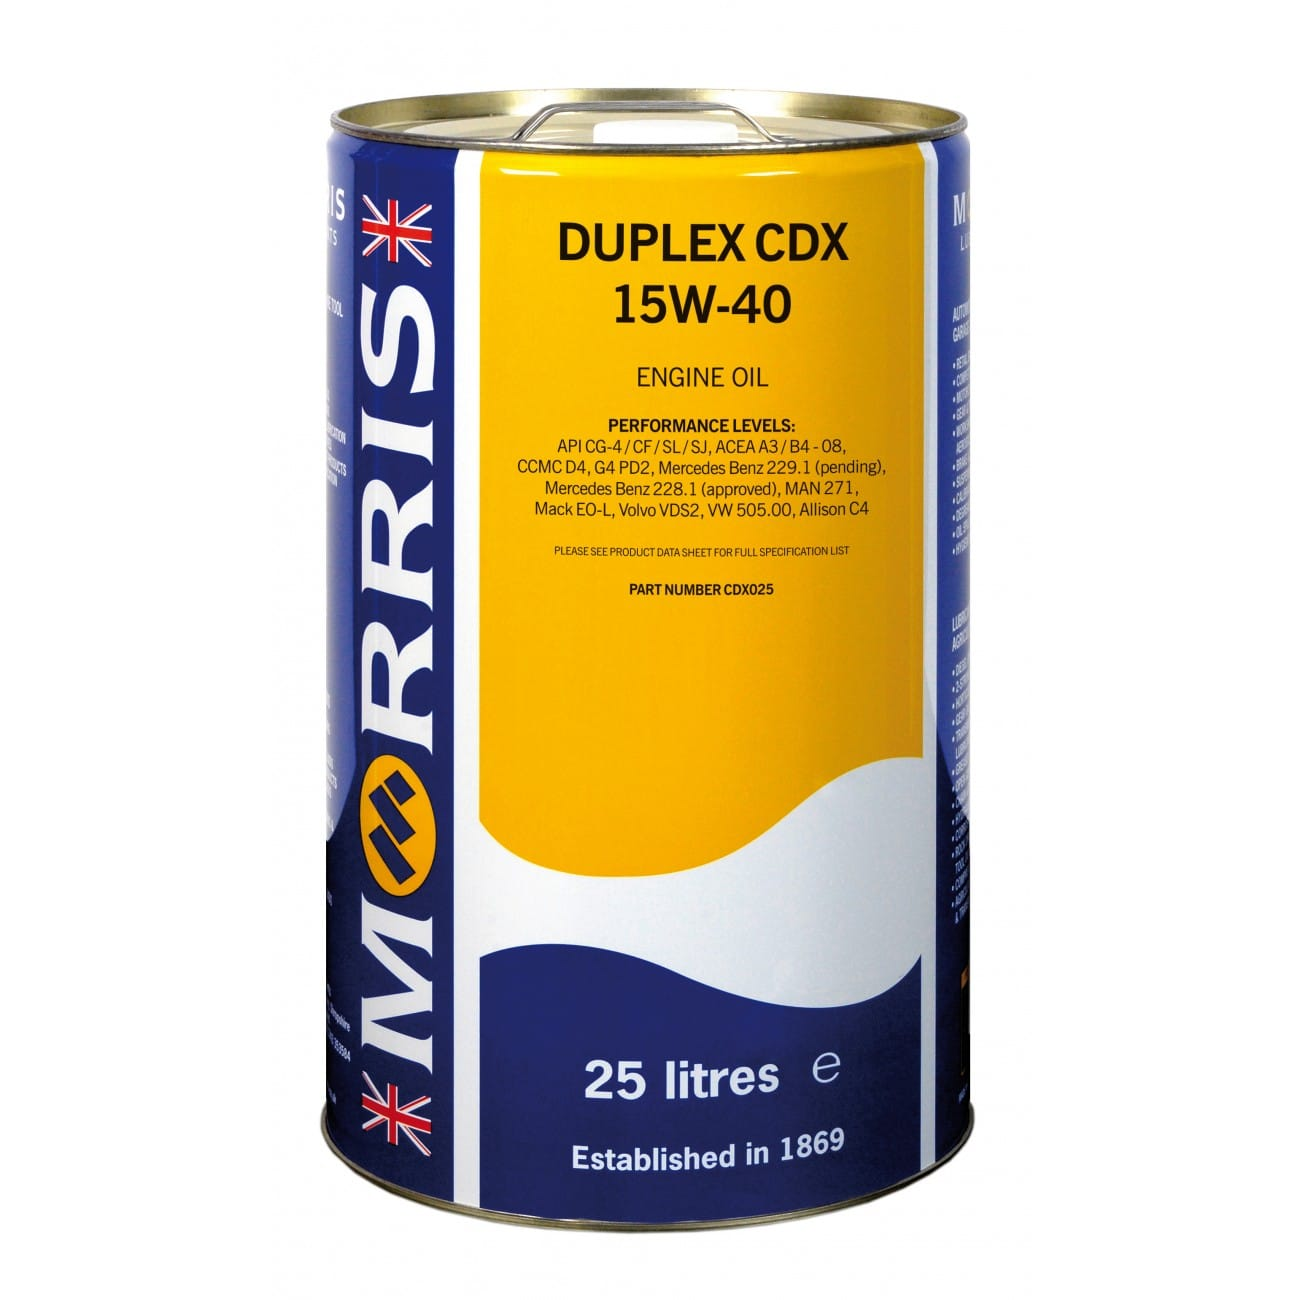 Duplex CDX 15W-40 Engine Oil